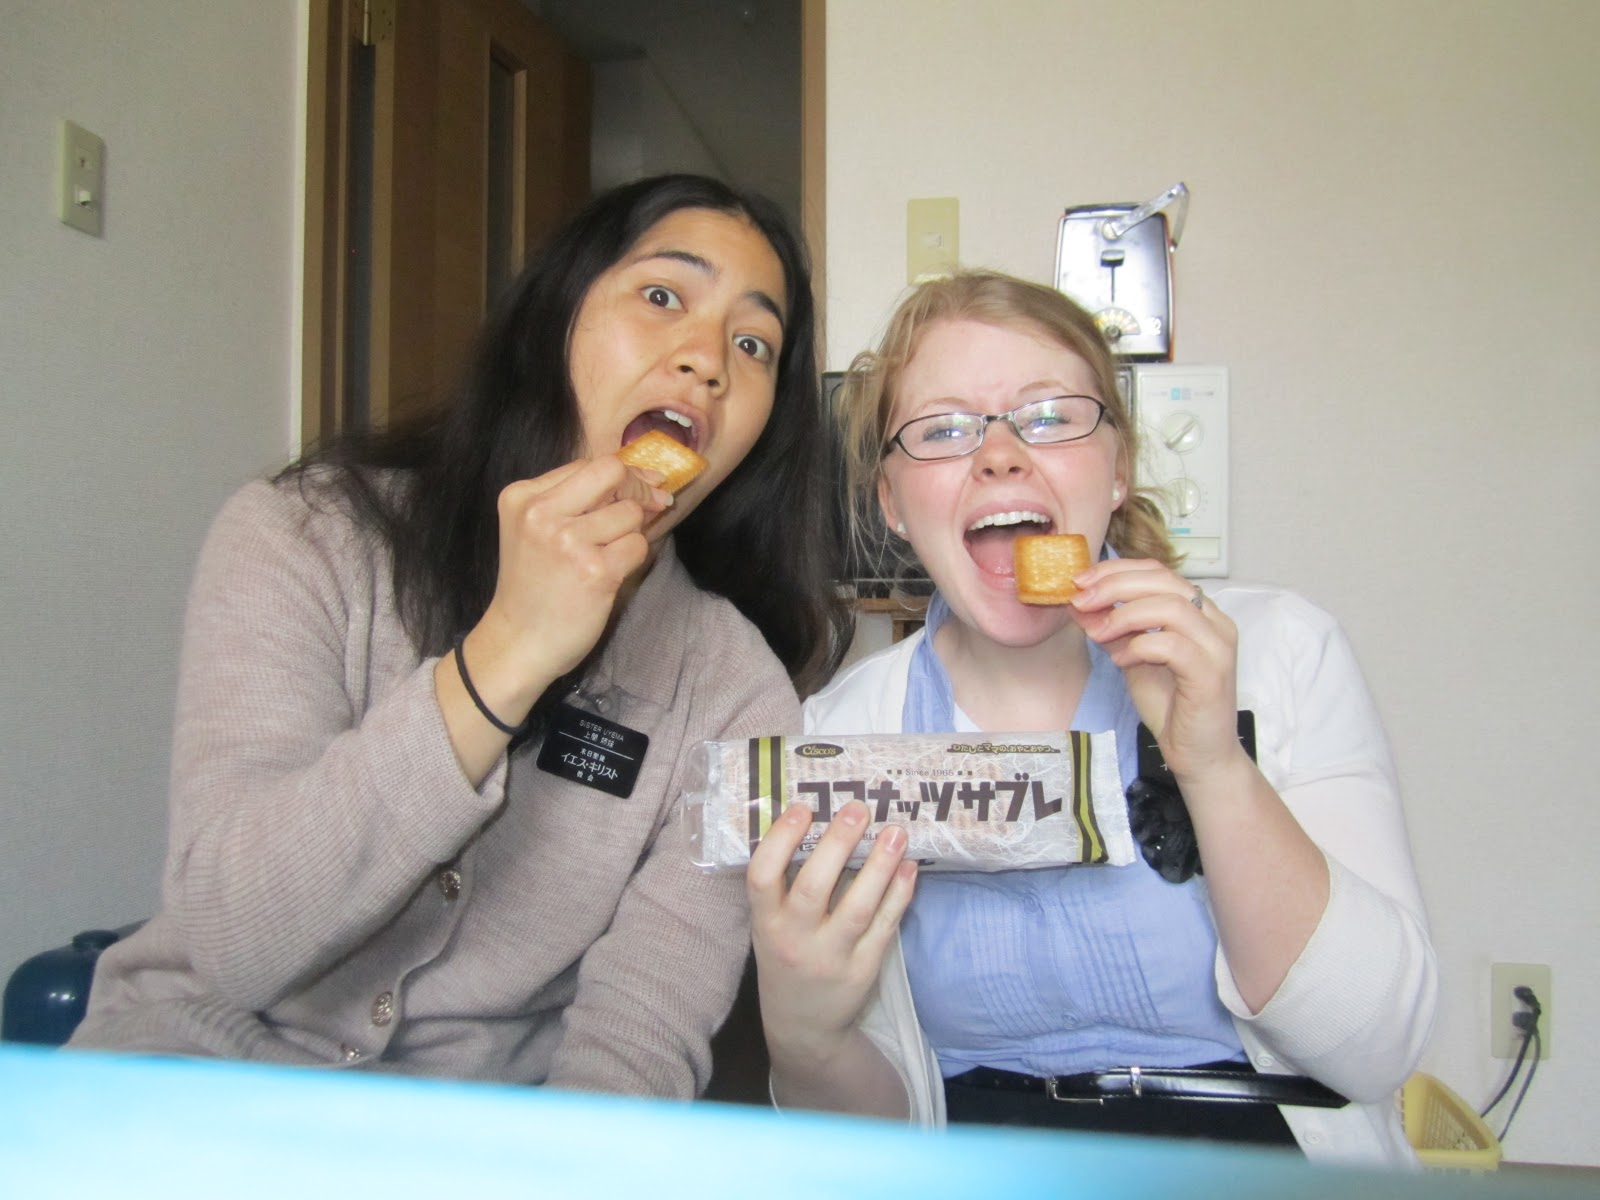 Sister Jena Anderson's Mission Blog: The work is windy ...